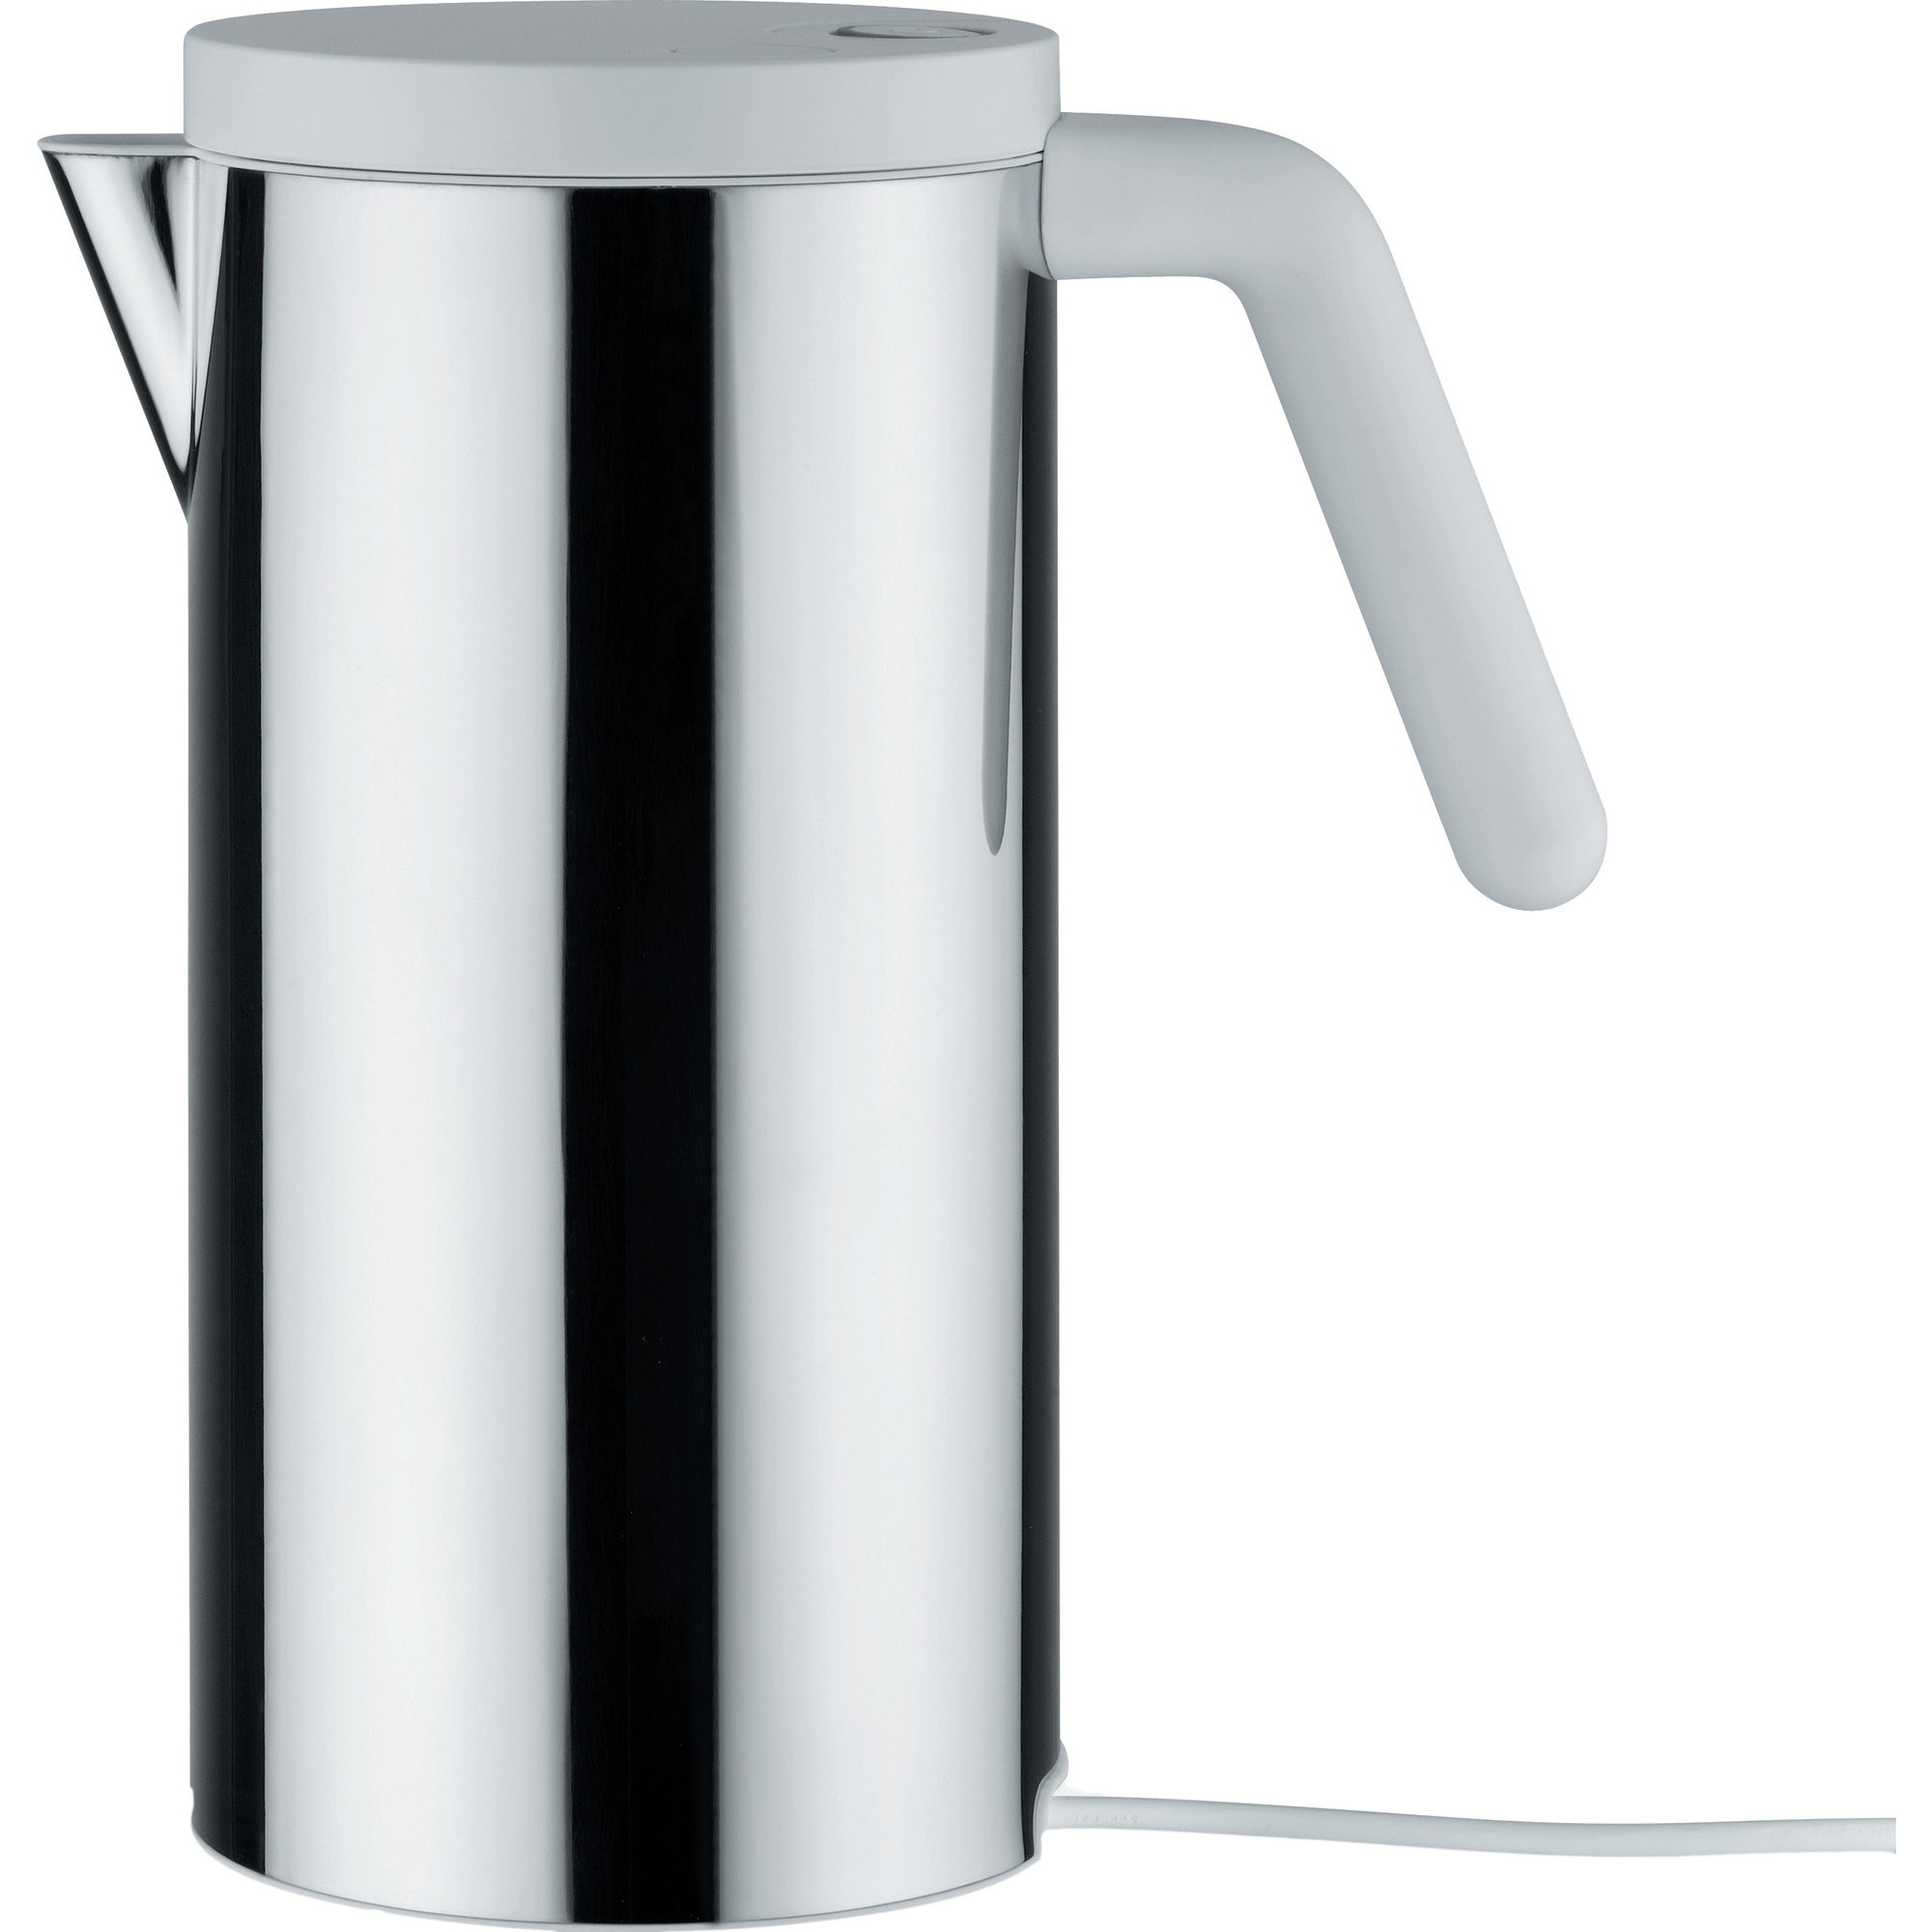 Alessi Hot-it Vattenkokare 14 liter Vit